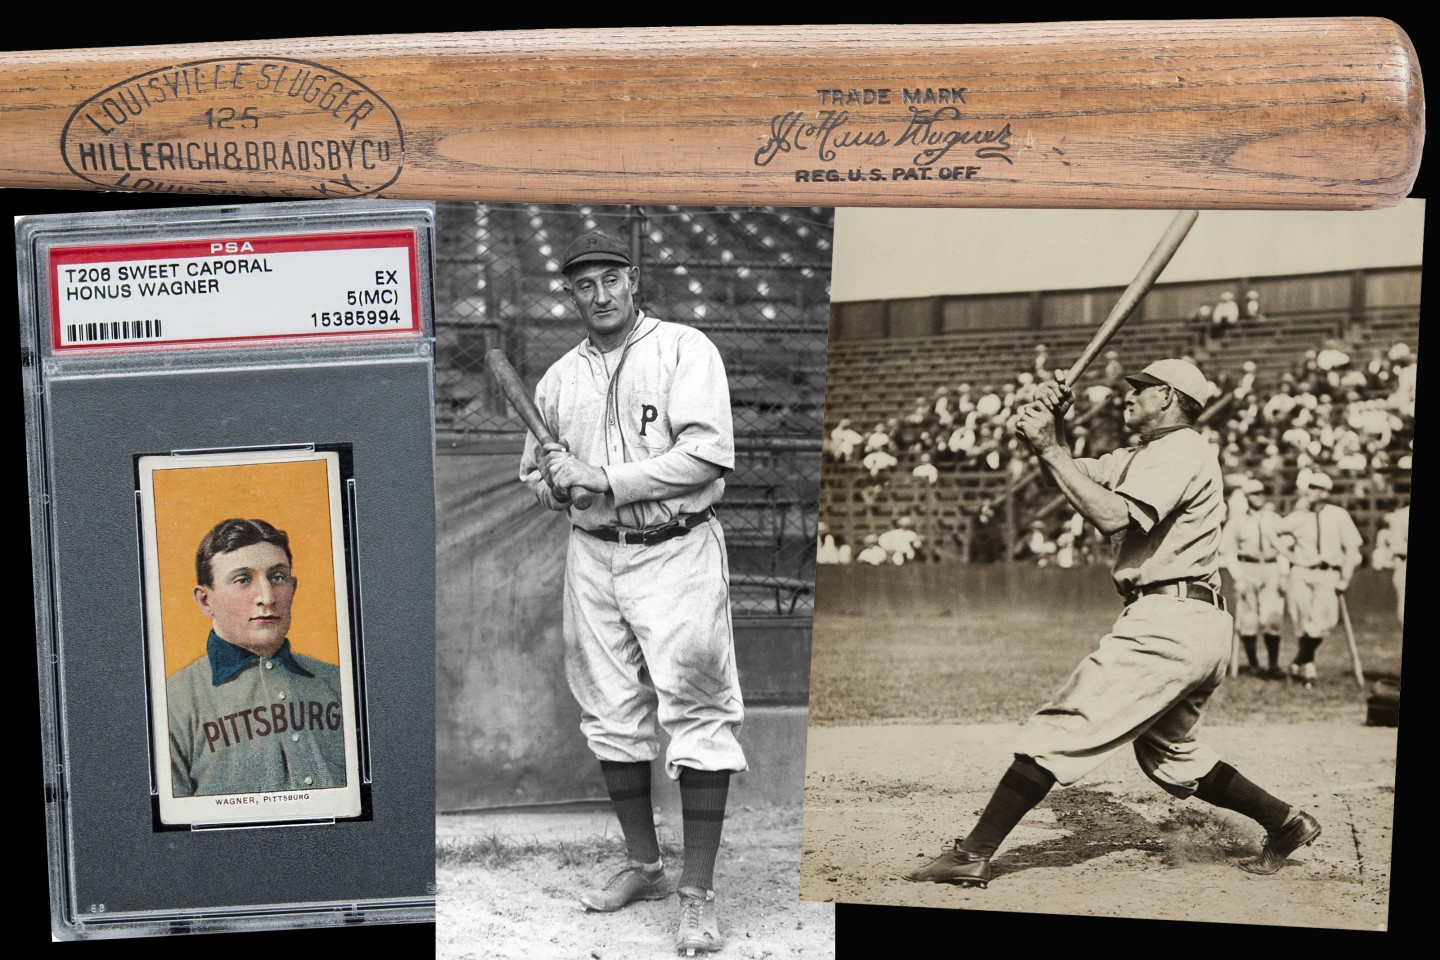 The name Honus Wagner is best known for the spectacular prices his T206 baseball card fetches. The card pictured at left sold for $3.1 million. What most people don't realise is that Wagner was a baseball player of the same calibre as Ty Cobb, Lou Gehrig, Babe Ruth and Mickey Mantle. Wagner was the very first American sportsperson to sign an endorsement deal, and the pictured 1916-1917 Louisville Slugger Model 125 is a pristine example of the very first endorsed baseball bat. Much has been written that the reason for the scarcity of the Honus Wagner T206 baseball card is that Wagner refused to endorse tobacco and demanded the cards were pulled. In fact, Wagner accepted payment to endorse chewing tobacco at a later date. The lucrative nature of the Hillerich & Bradsby deal, inked in 1905, seems far more likely to have made him aware that he was entitled to payment if his likeness was to be used on a baseball card. Pictured is Honus Wagner's 1916-1917 Louisville Slugger Model 125 that sold for $428,000 at Goldin auctions last August.